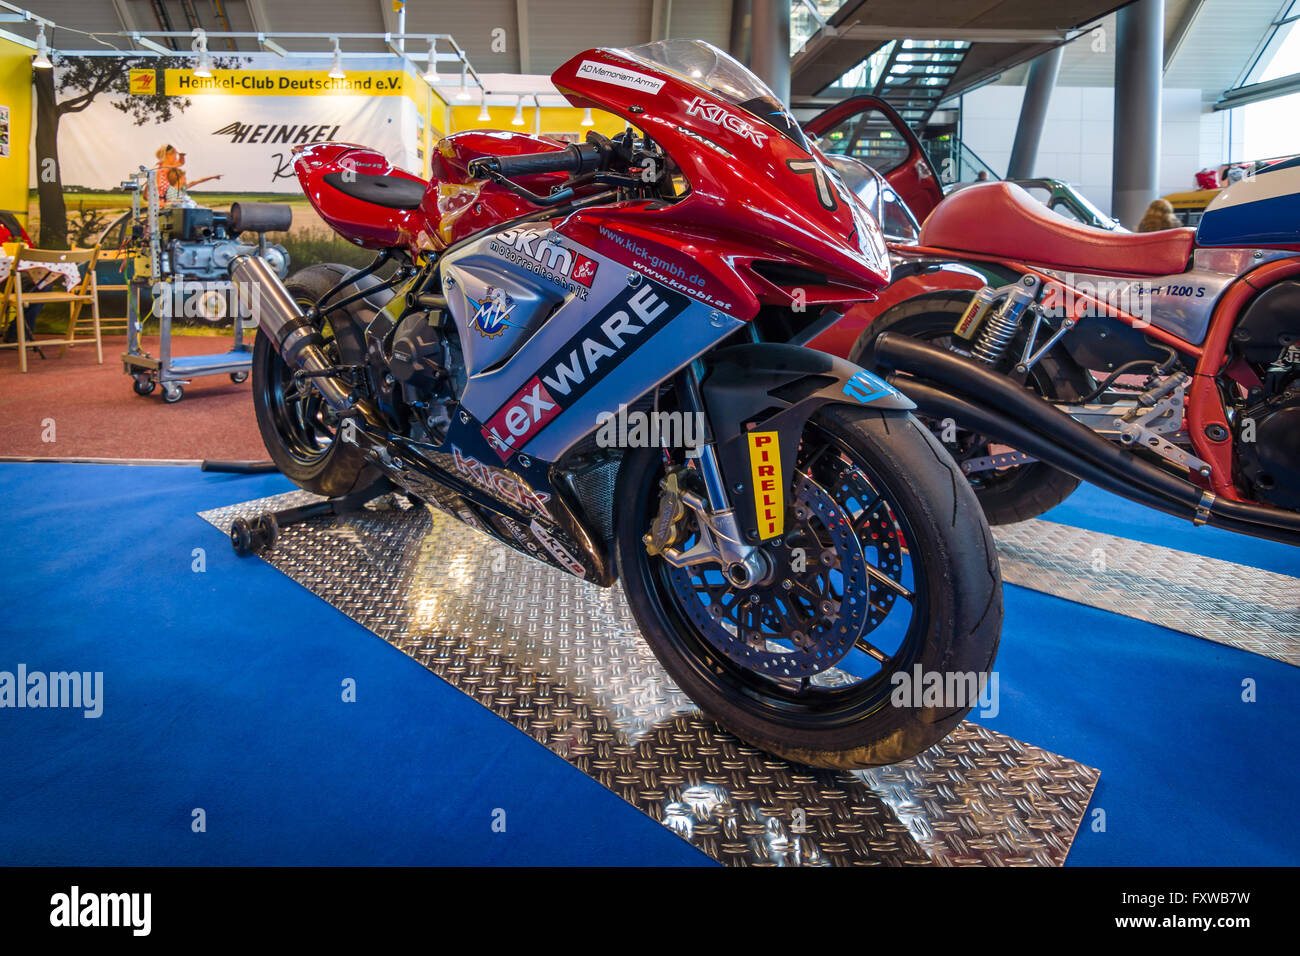 Motorcycle MV Agusta F3 STICK EM, 2013. Europe's greatest classic car exhibition 'RETRO CLASSICS' - Stock Image